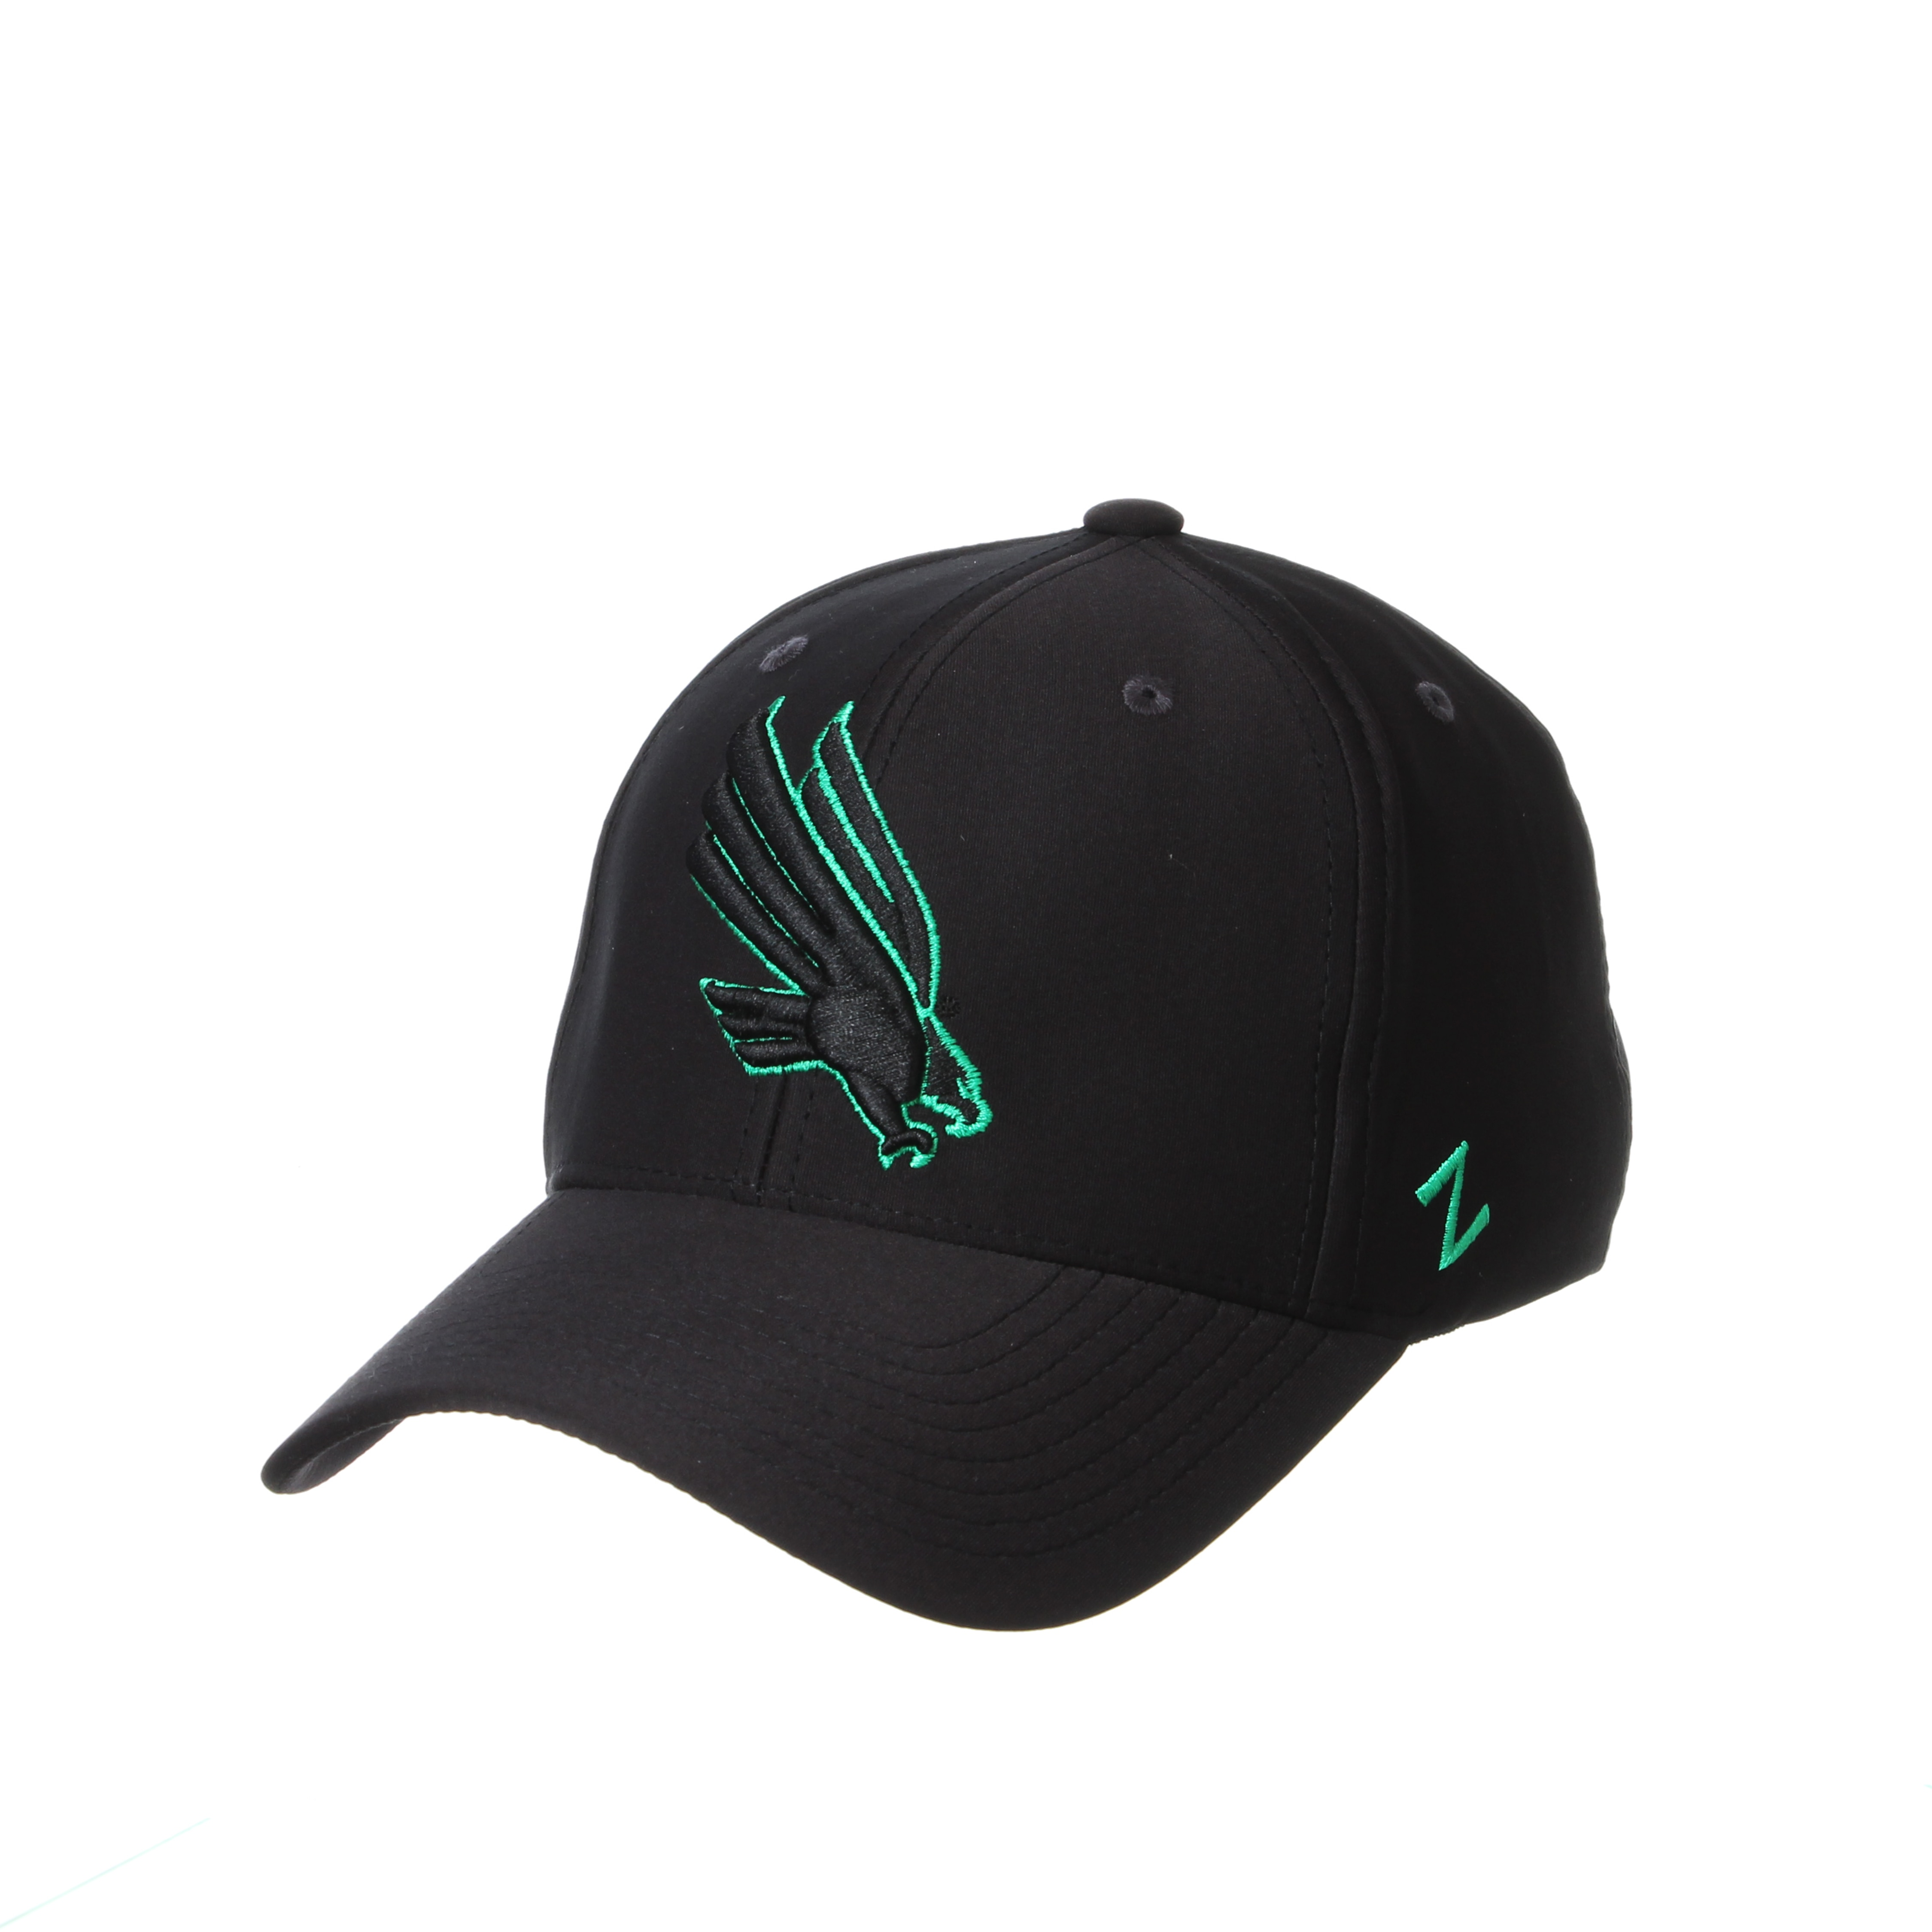 University of North Texas Zephyr Phoenix Structured Curved Bill Stretch Fit Cap Hat